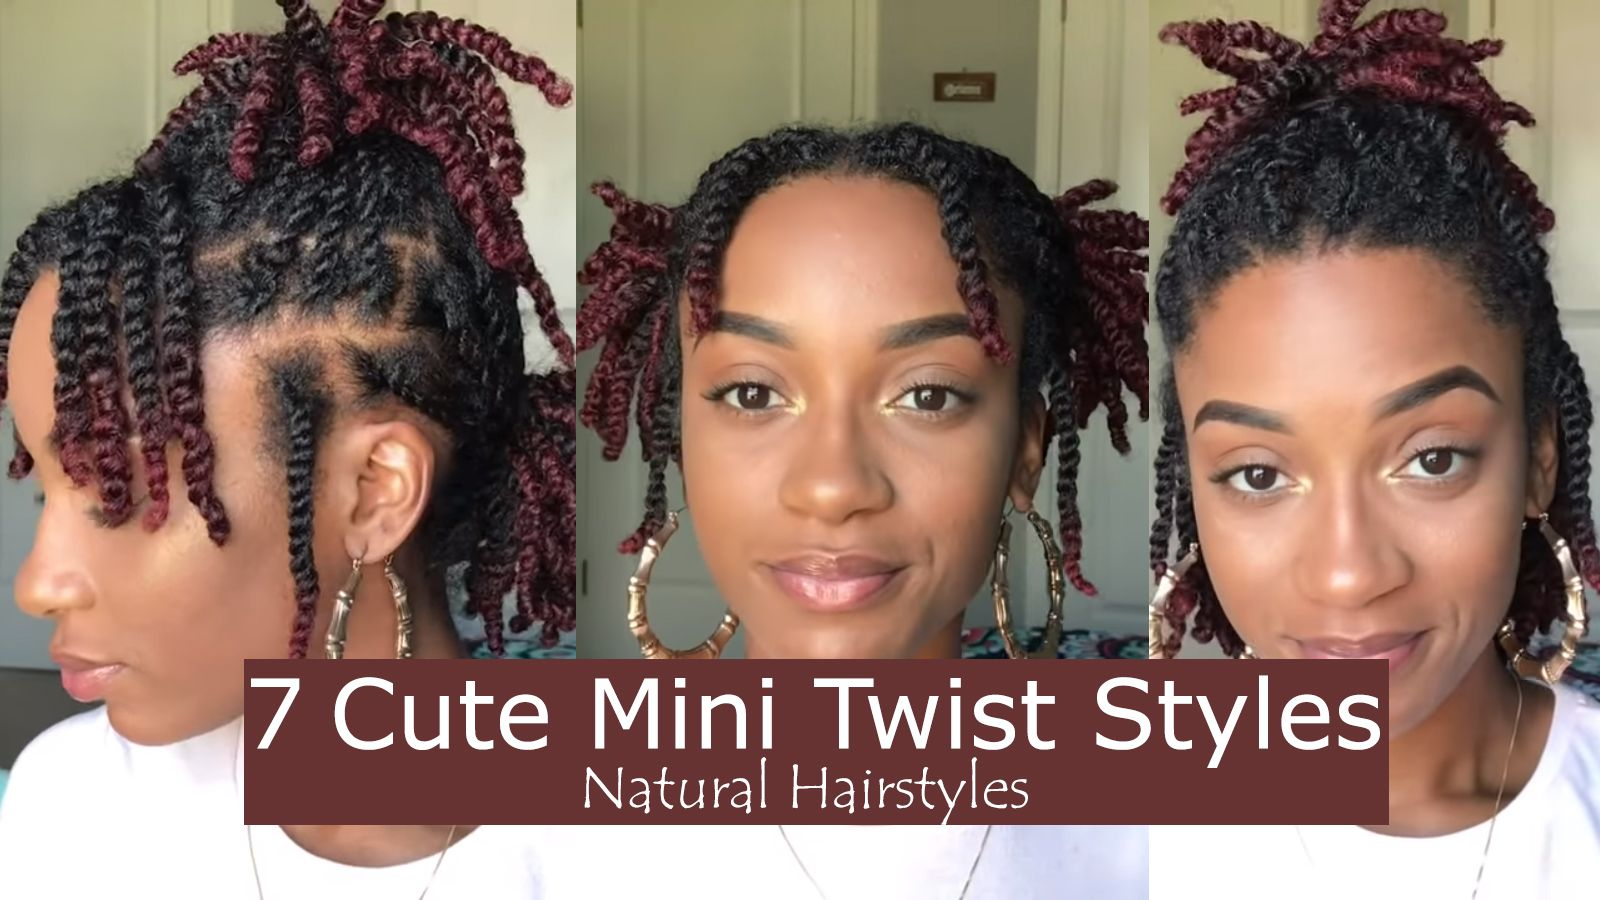 7 Quick And Easy Styles You Can Do With Your Mini Twists Natural Hair Styles Natural Hair Twists Natural Hair Twist Out